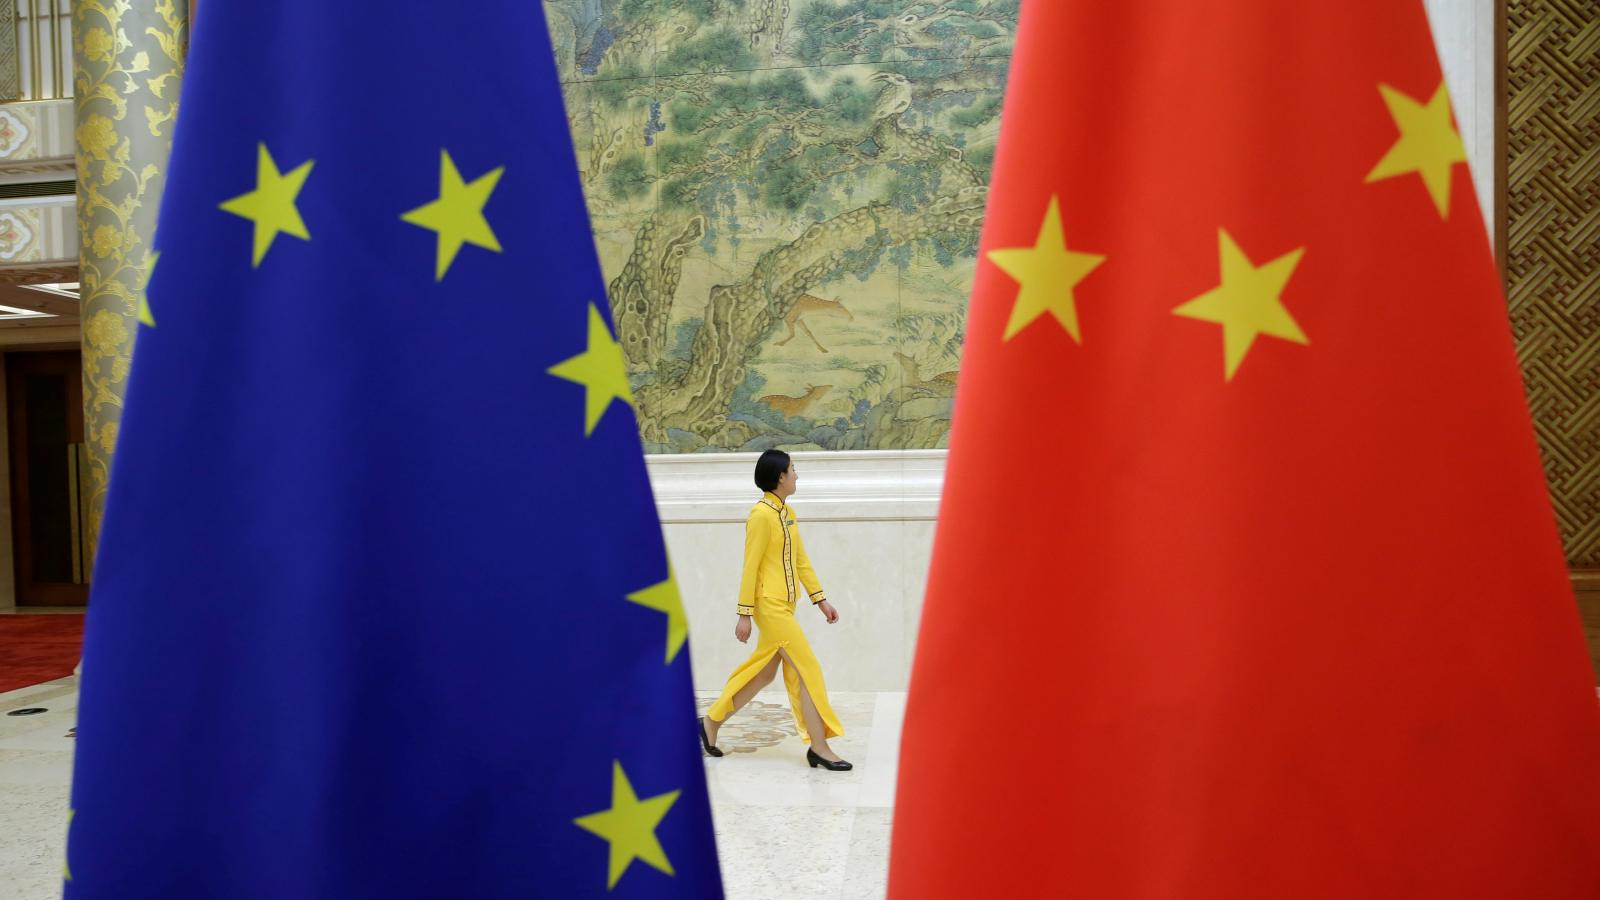 Photo: An attendant walks past flags of EU and China ahead of the EU-China High-level Economic Dialogue at Diaoyutai State Guesthouse in Beijing, China June 25, 2018. Credit: REUTERS/Jason Lee